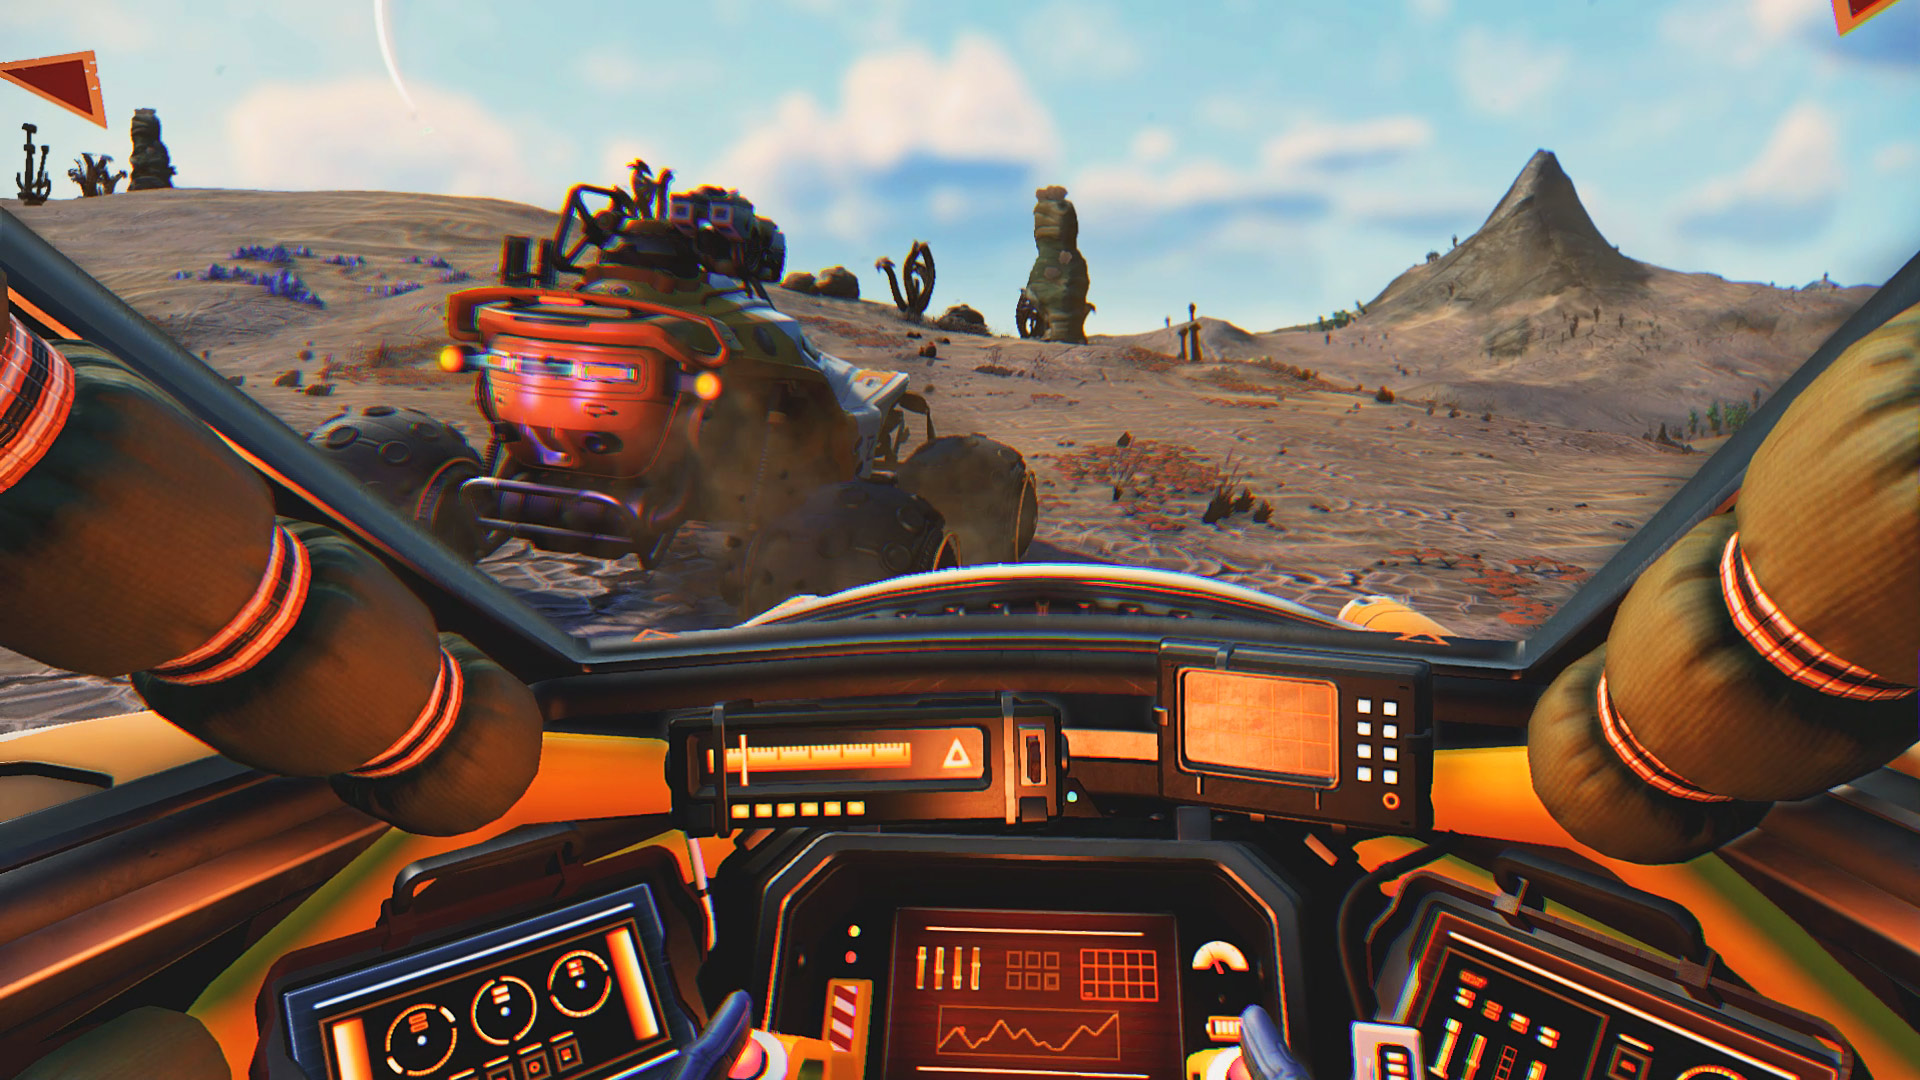 No Man's Sky' is Getting Full VR Support for PSVR, Rift, and Vive